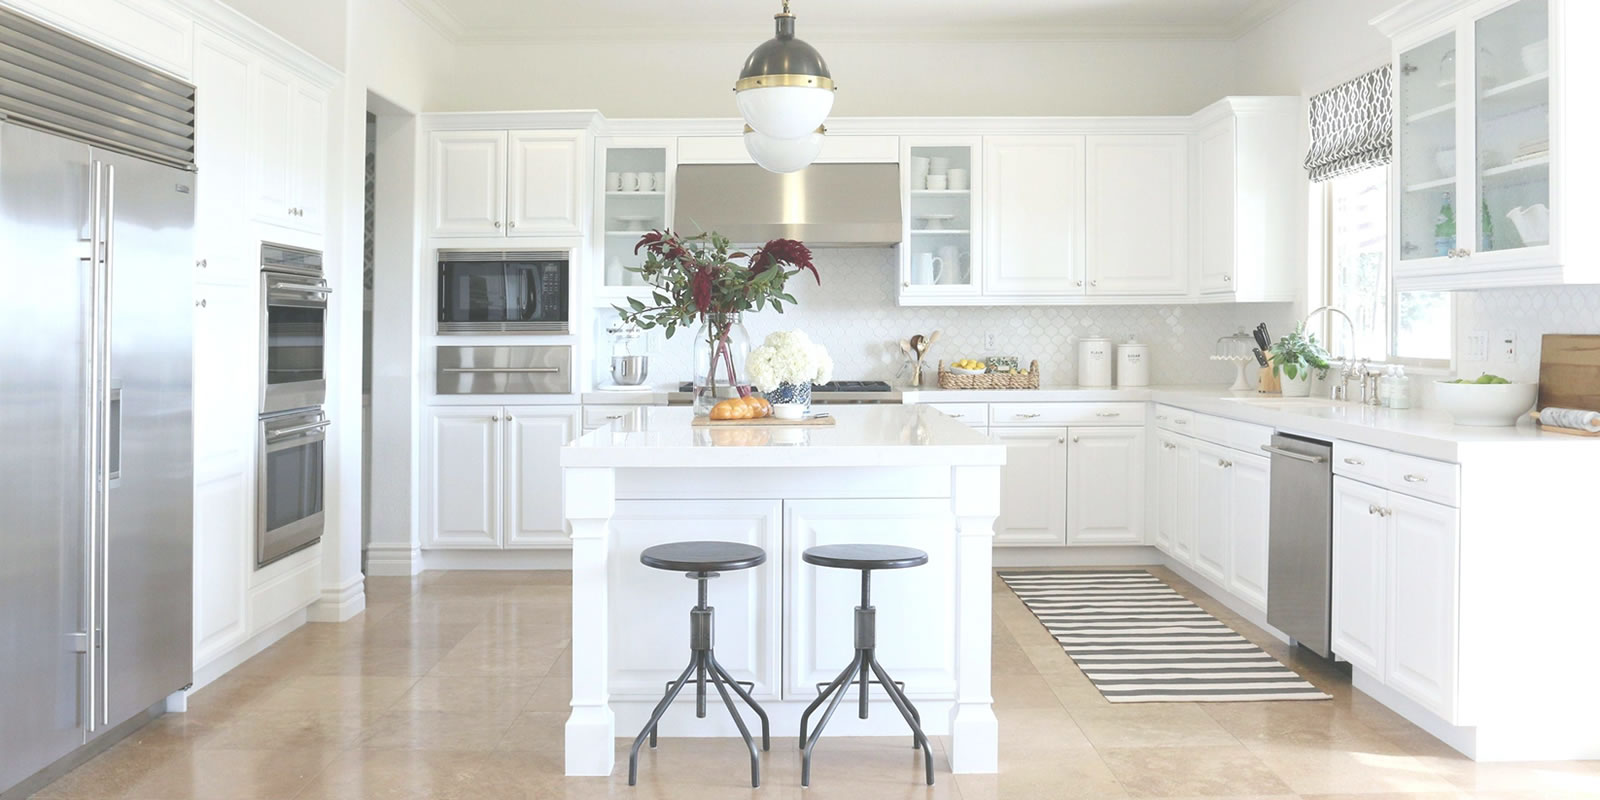 Quality home renovations and custom Kitchen and bathroom designs